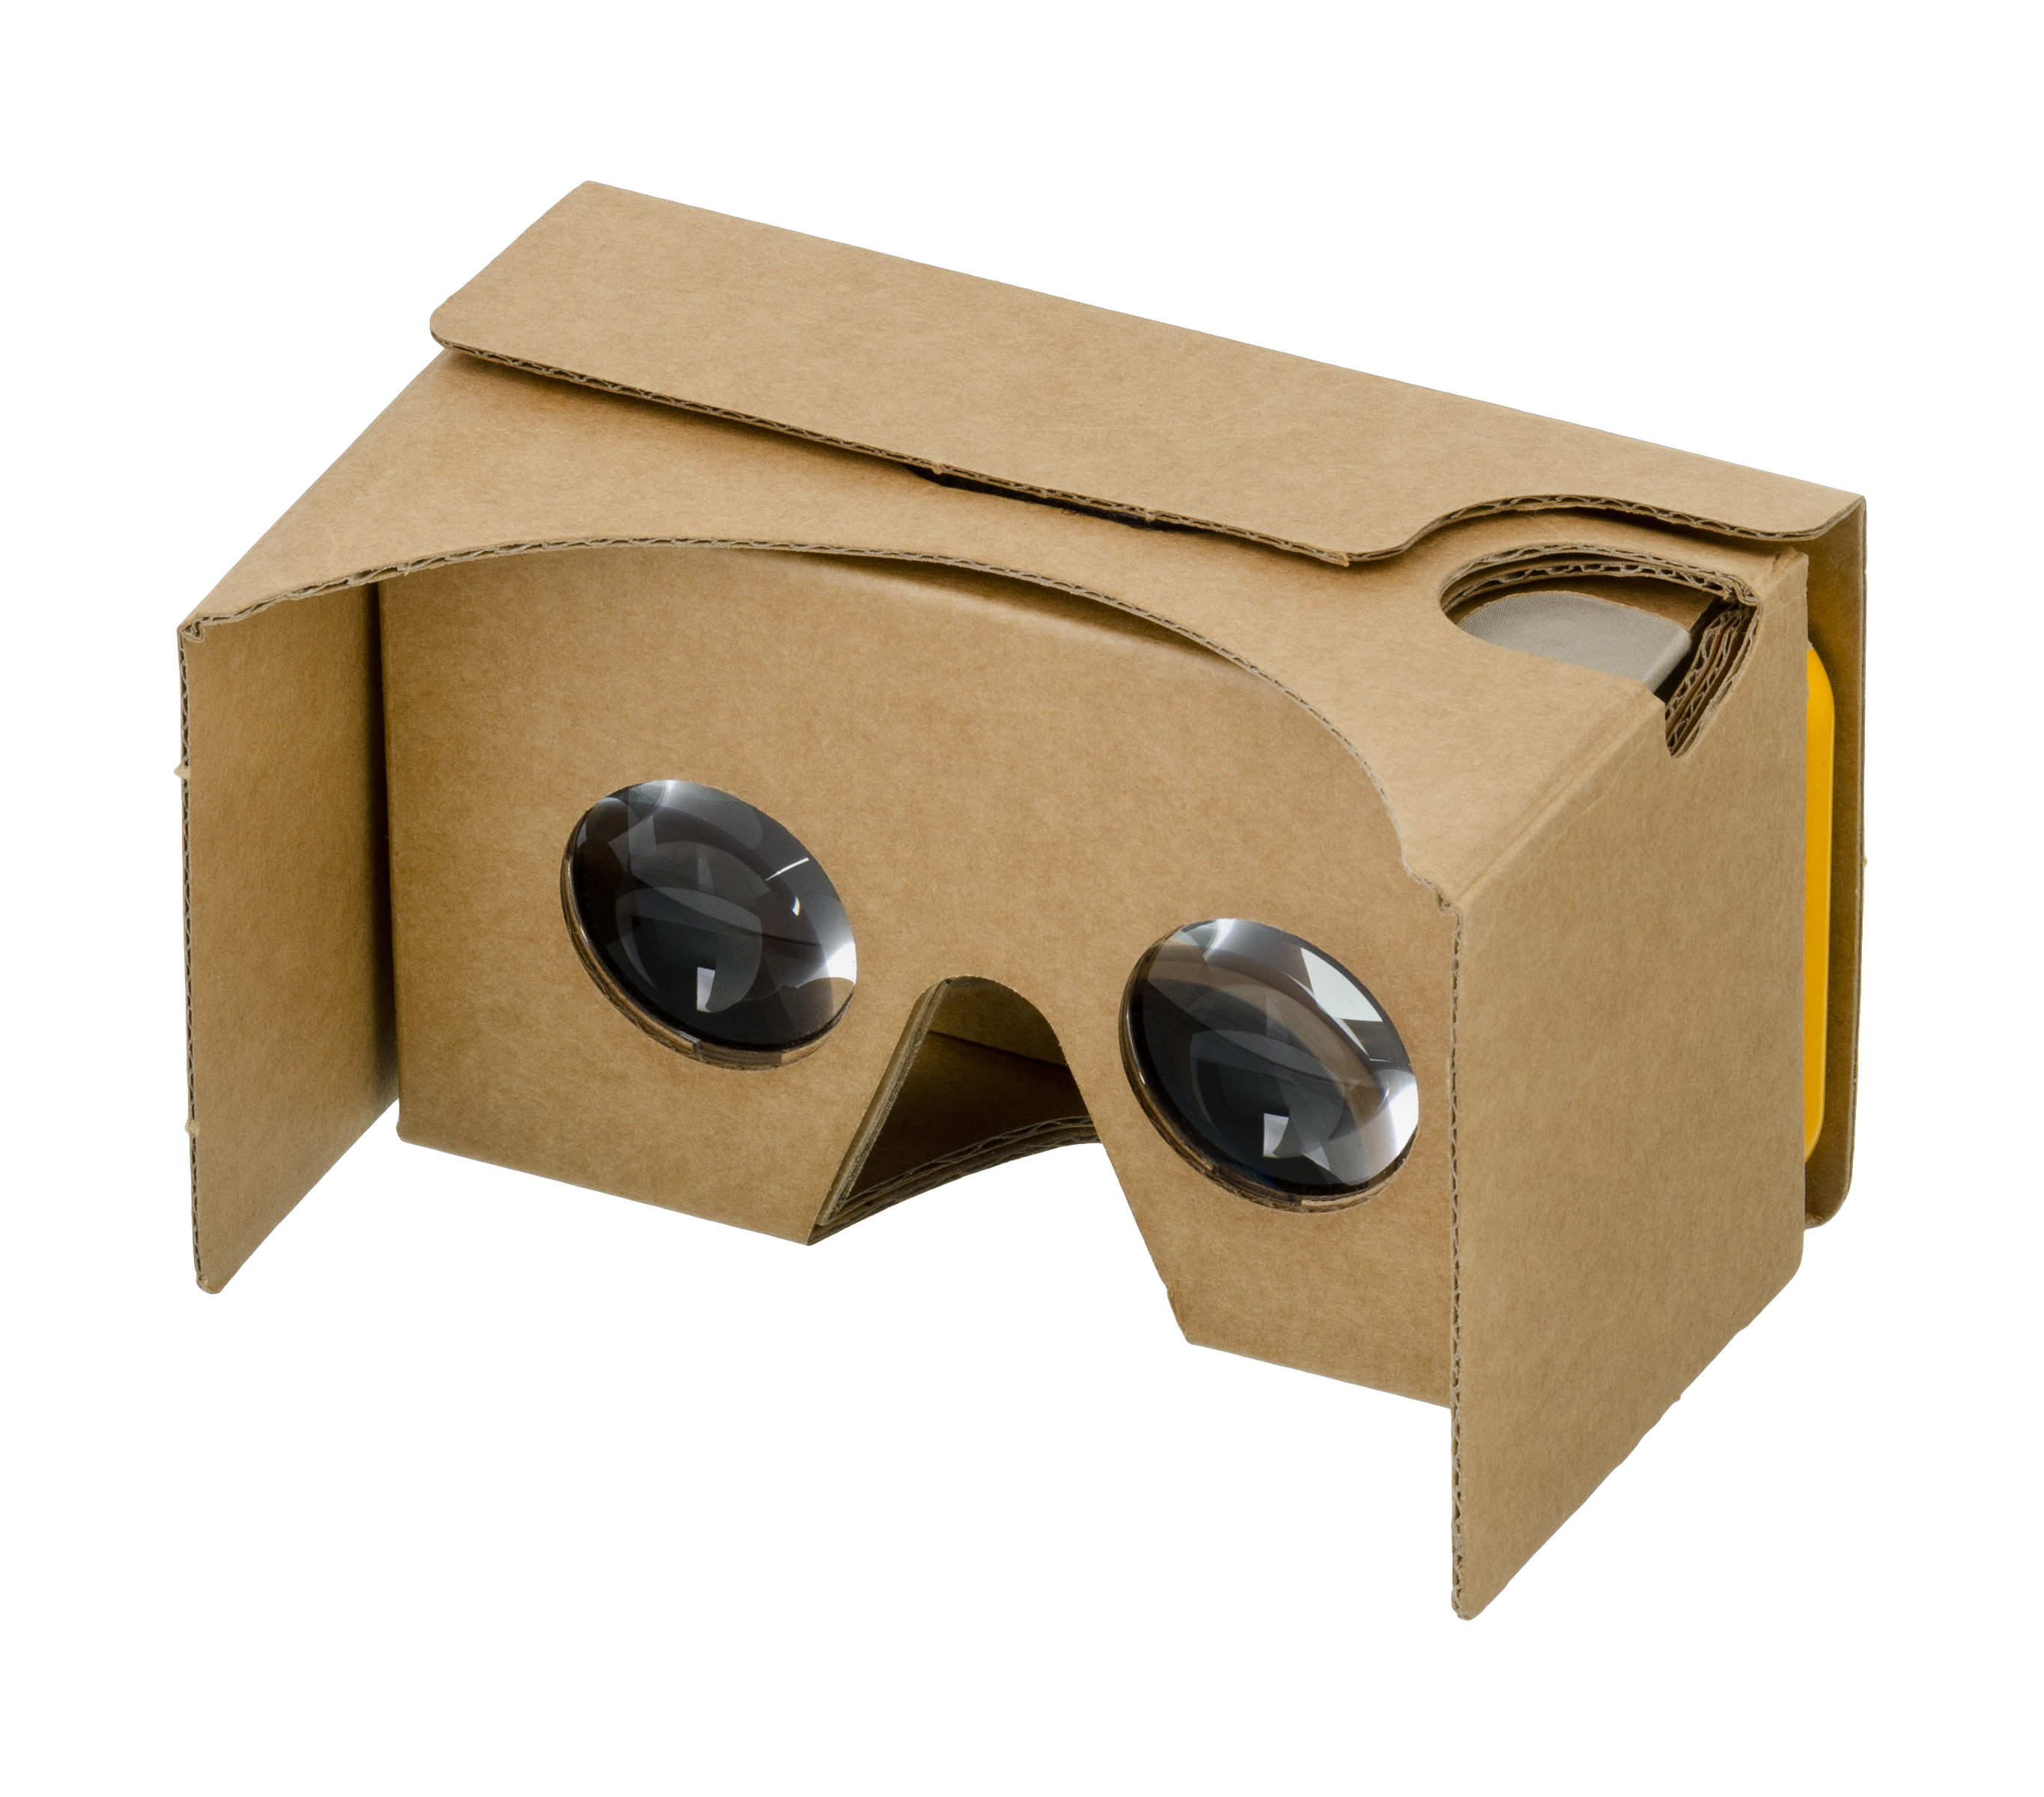 Photograph of a Google Cardboard viewer, a small cardboard box with two eye holes and lens that let the viewer look inside of the box to see their smartphone.